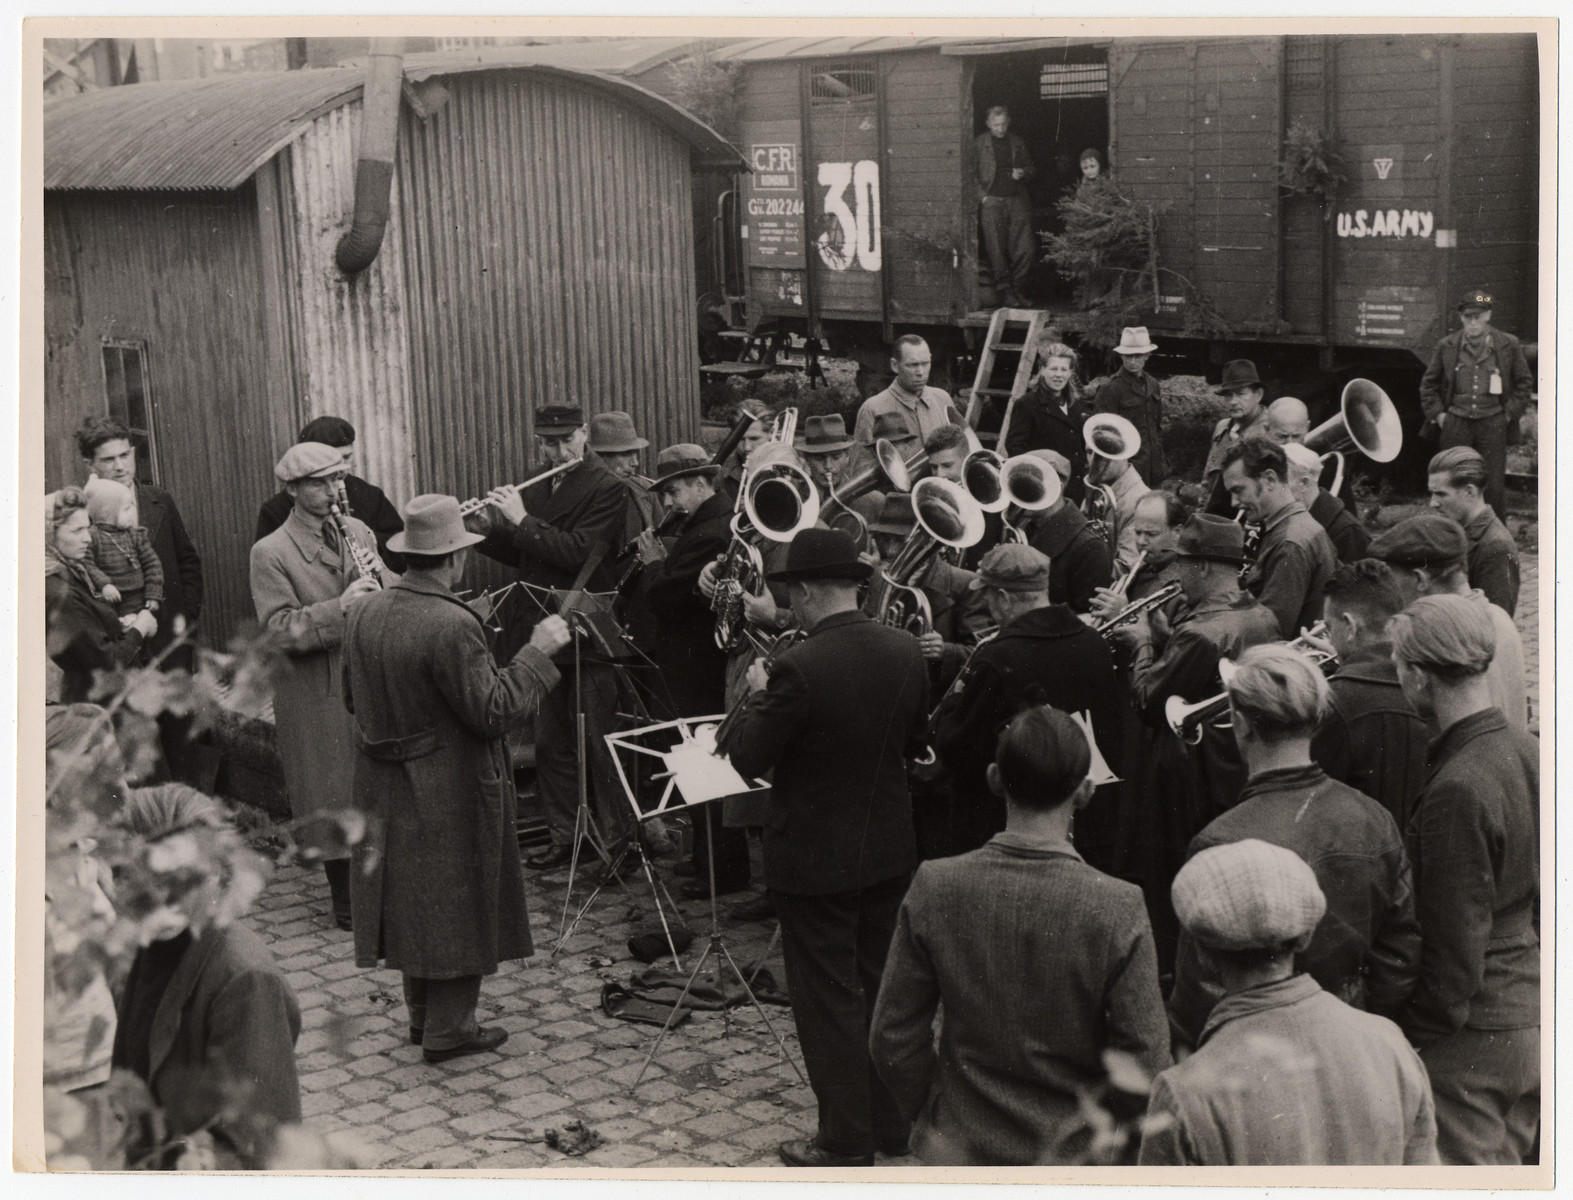 An orchestra performs at a train station as a send-off to a group of displaced persons leaving on a U.S. army train.